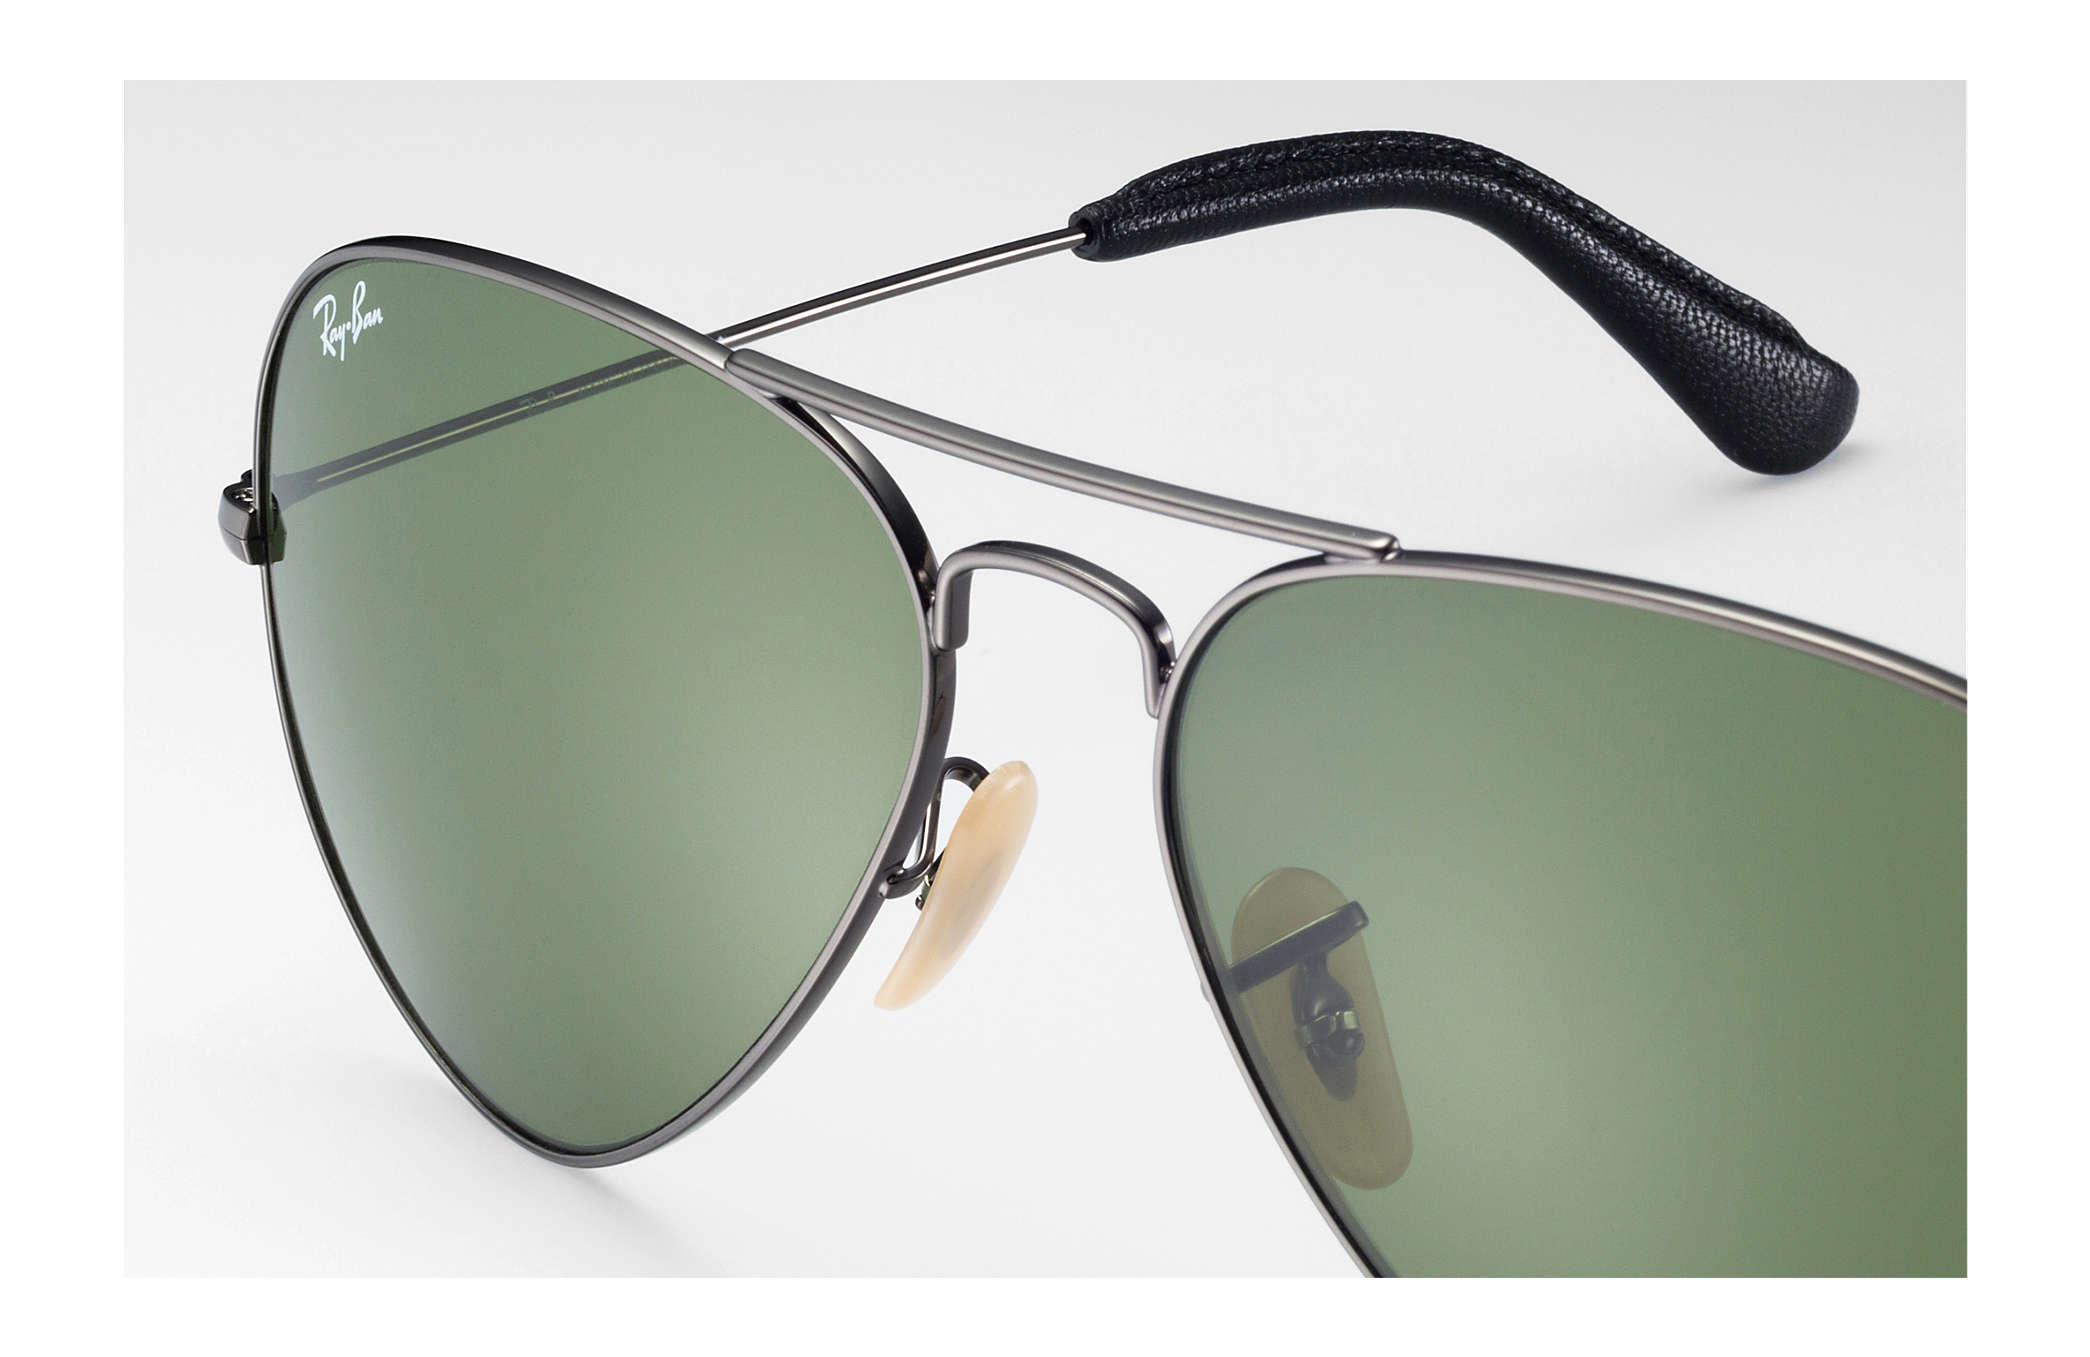 21e76da5e4 Ray-Ban Aviator  collection RB3025 Gunmetal - Metal - Green Lenses ...